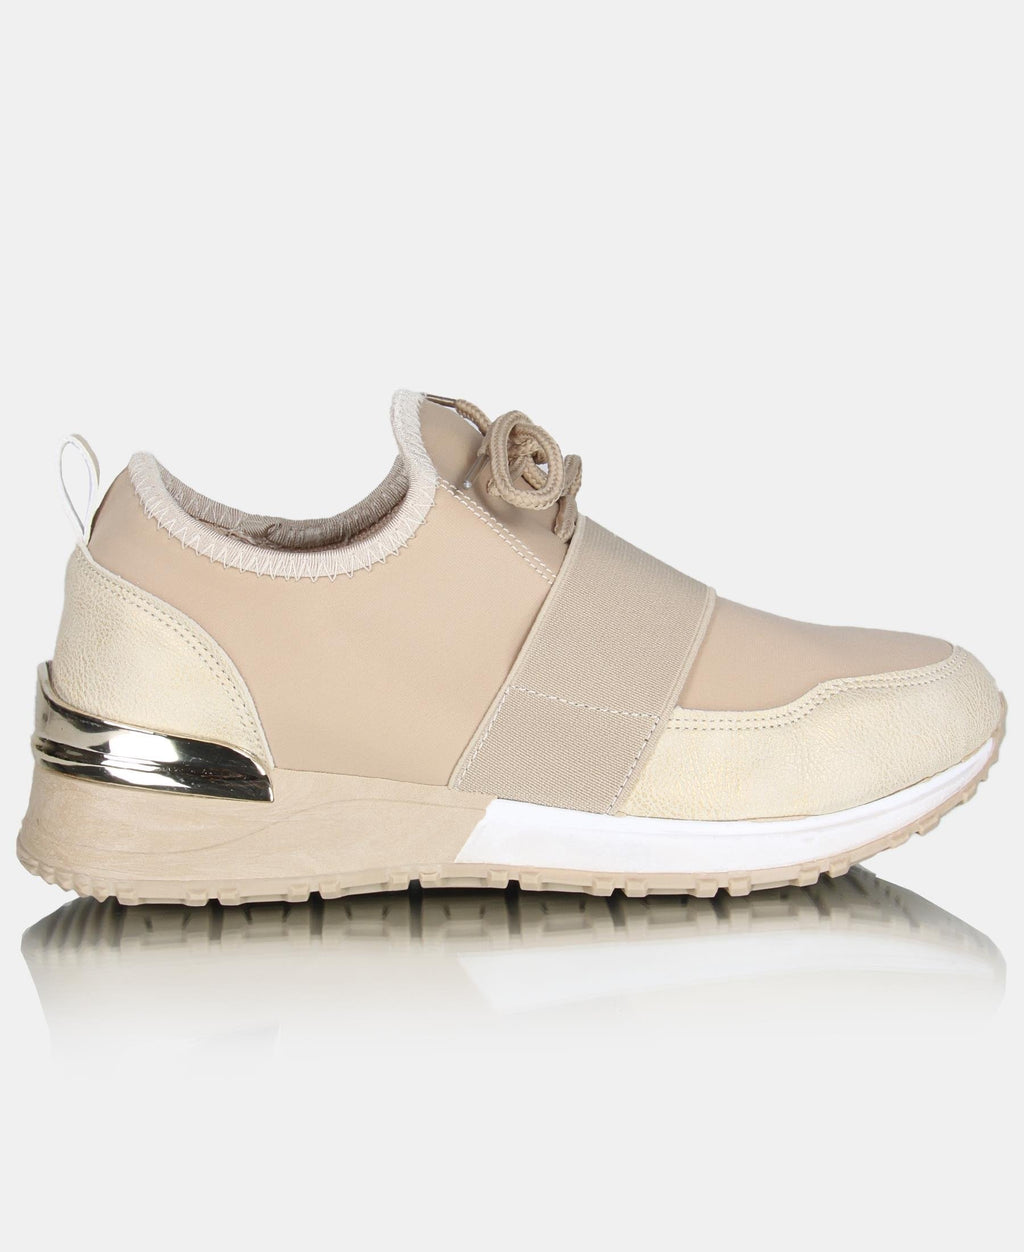 Ladies' Nova Madden Sneakers - Taupe